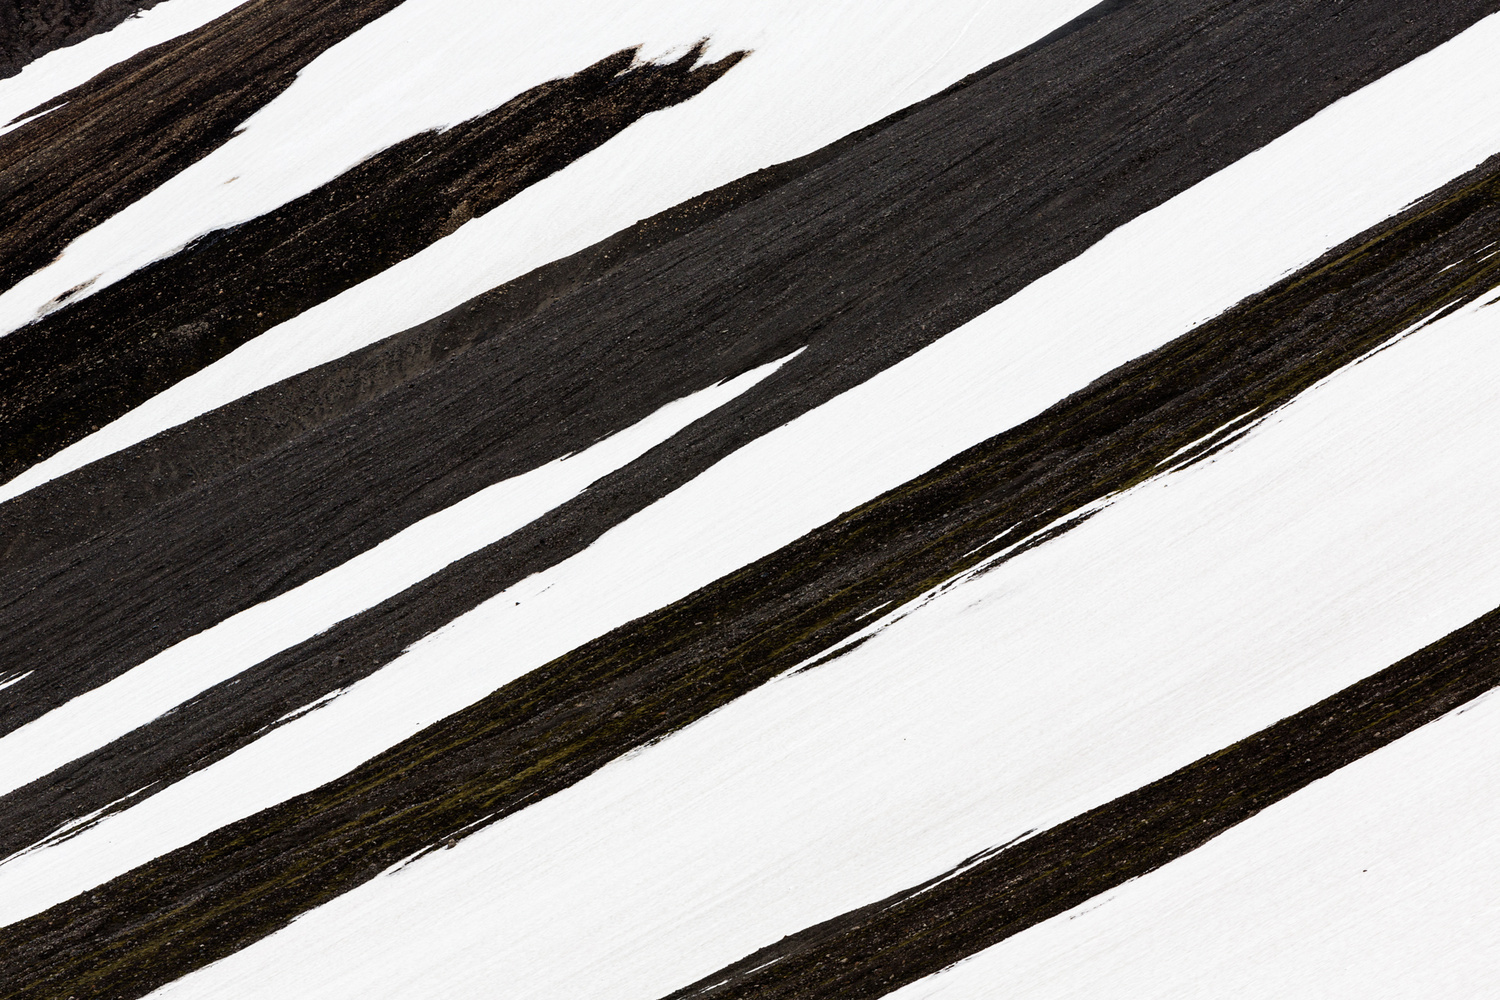 Snow Abstract by Thomas Even